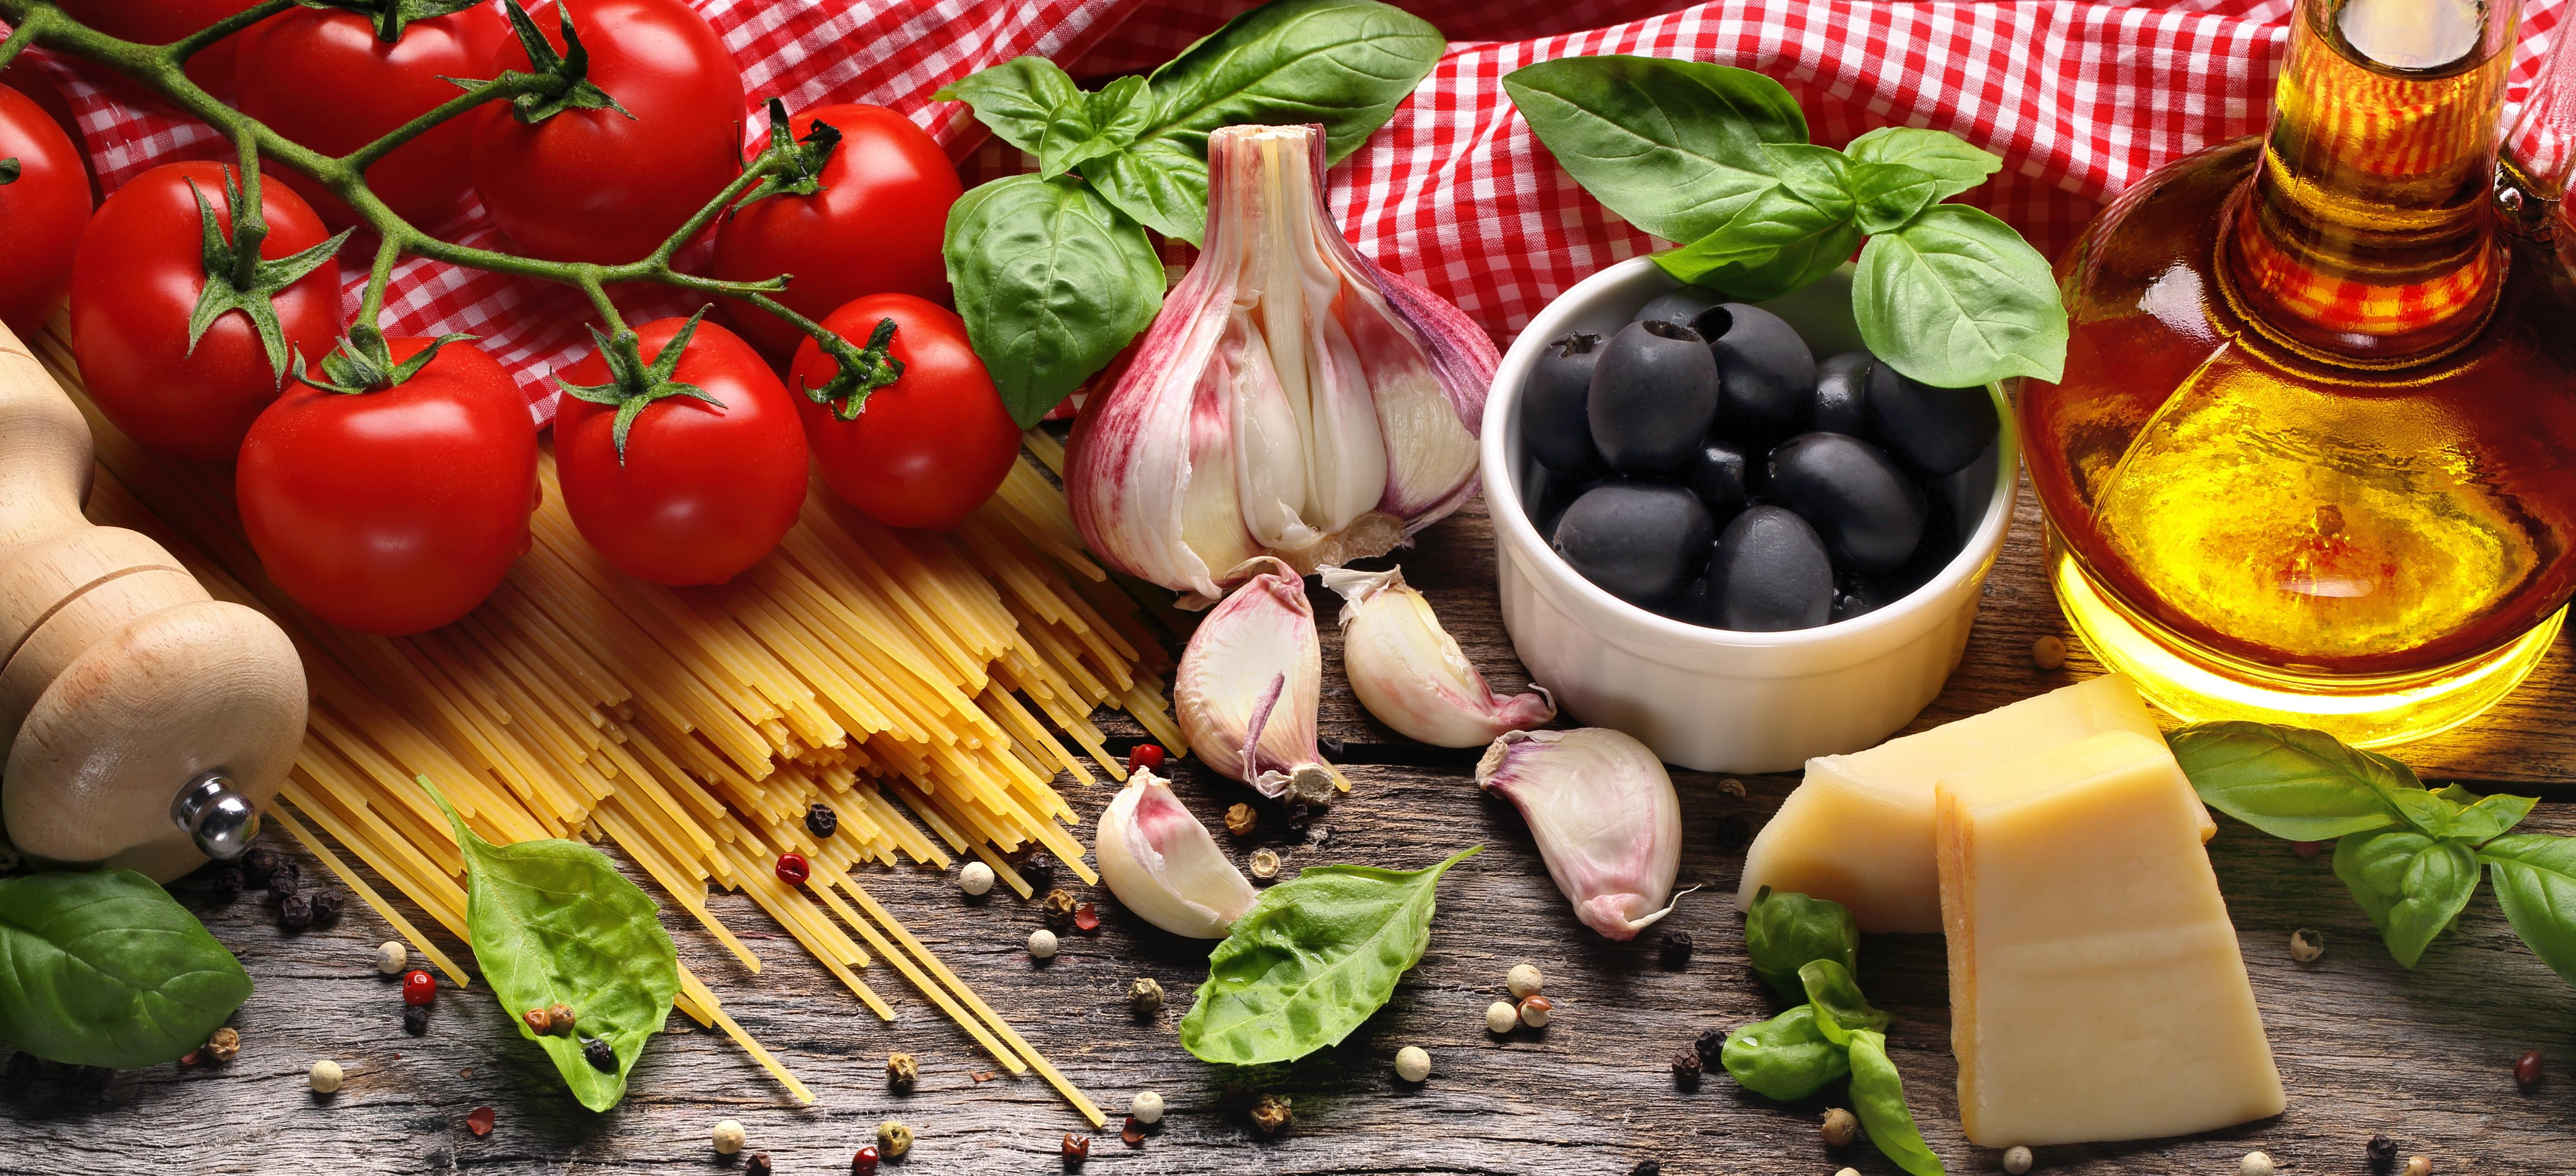 Top 15 Things Italy Is Famous For - Listovative